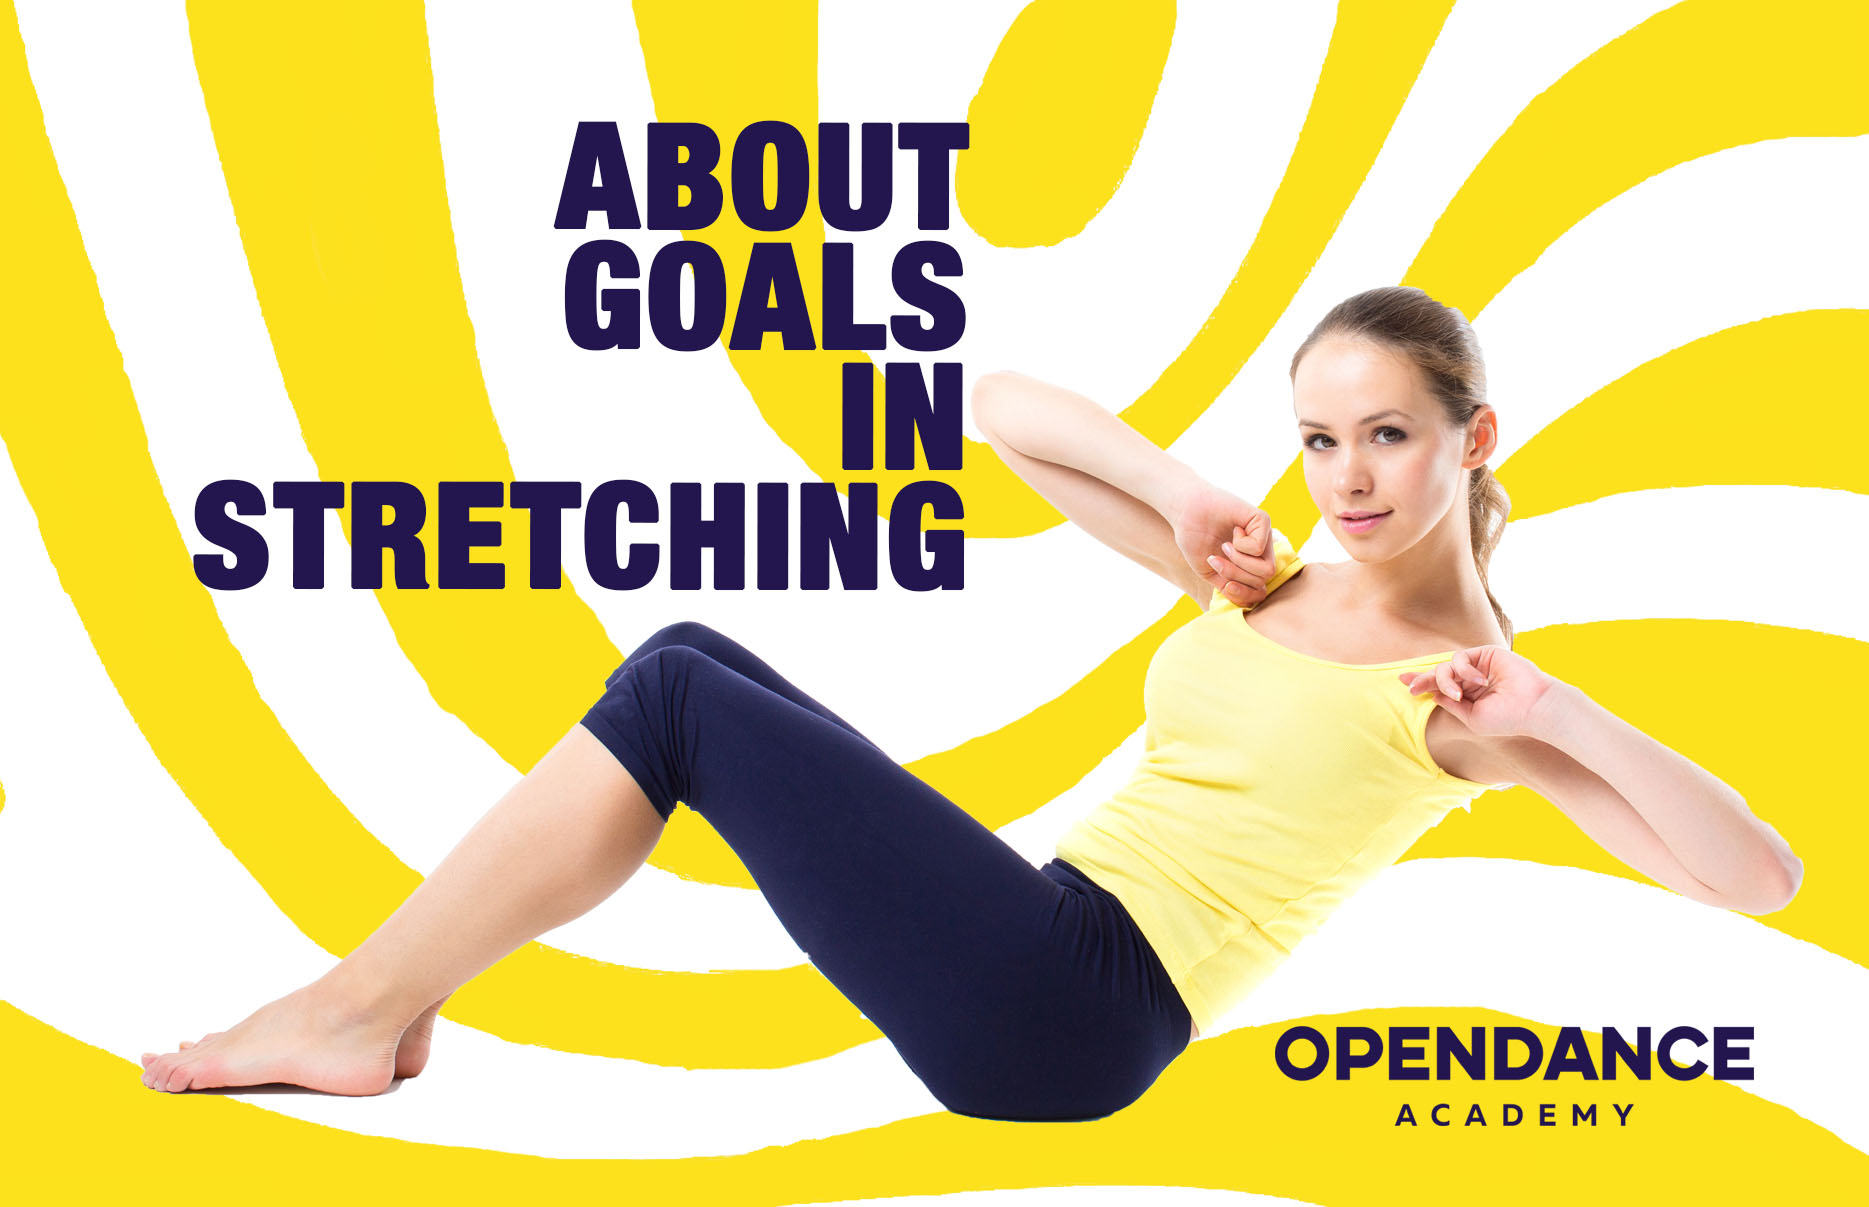 About Goals In Stretching